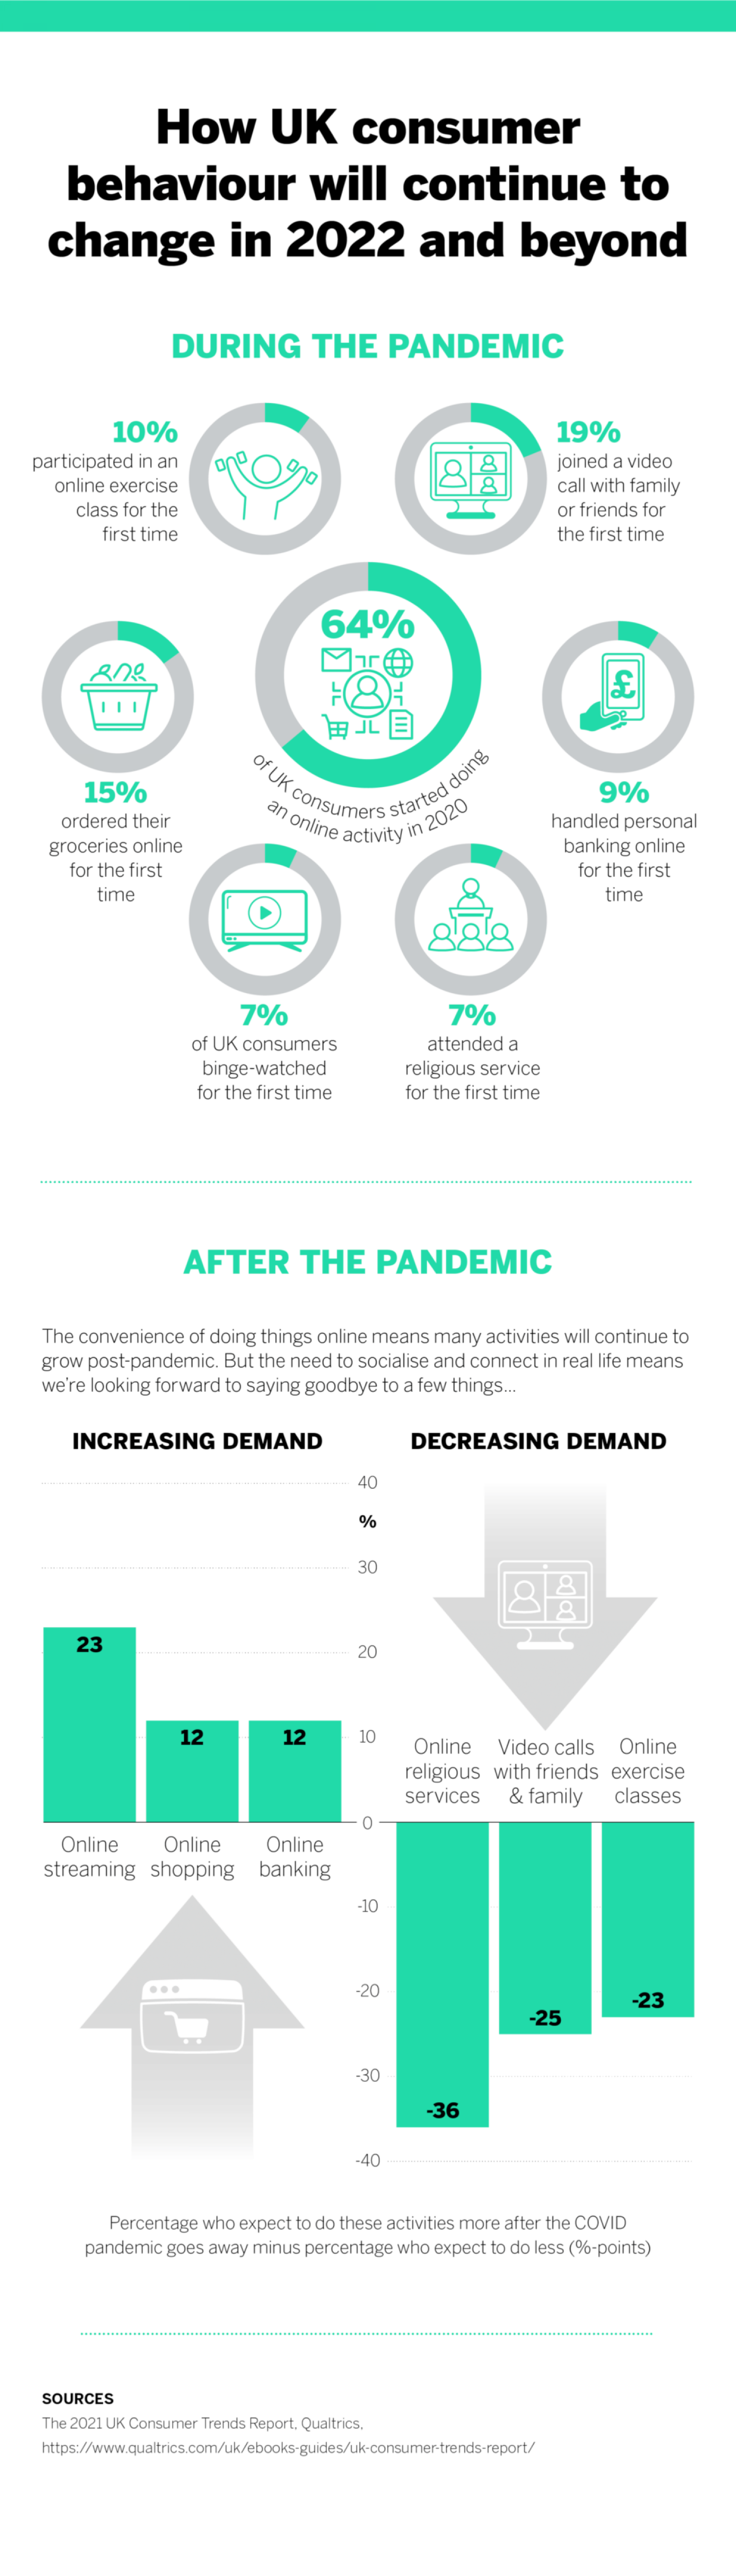 How UK consumer behaviour will continue to change in 2022 and beyond Infographic